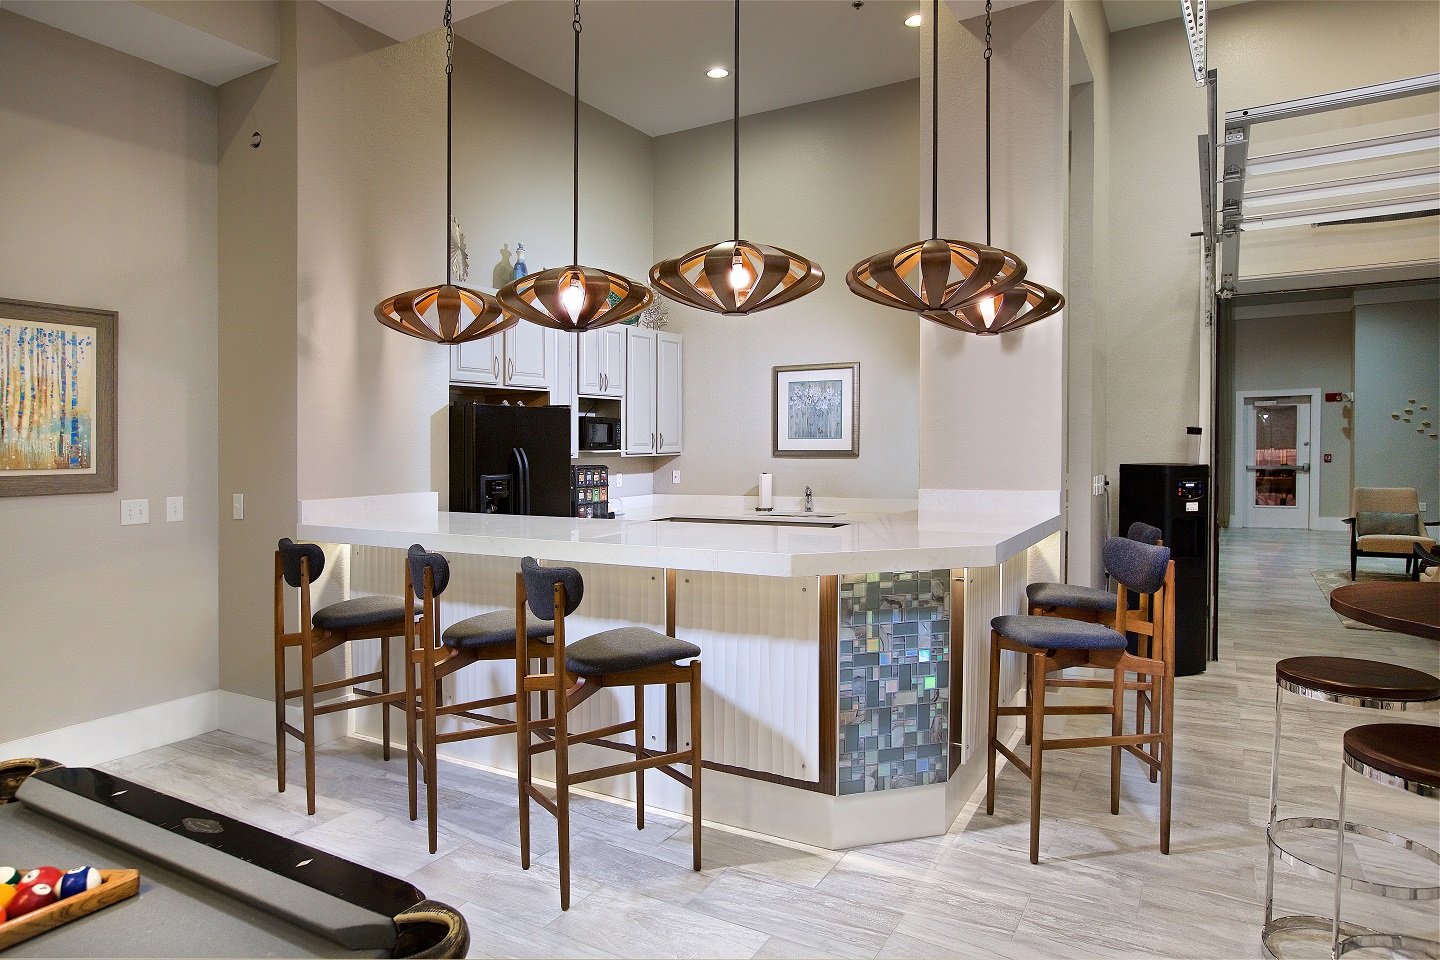 Coffee Bar and Hospitality Station at Century Deerwood Park, Florida